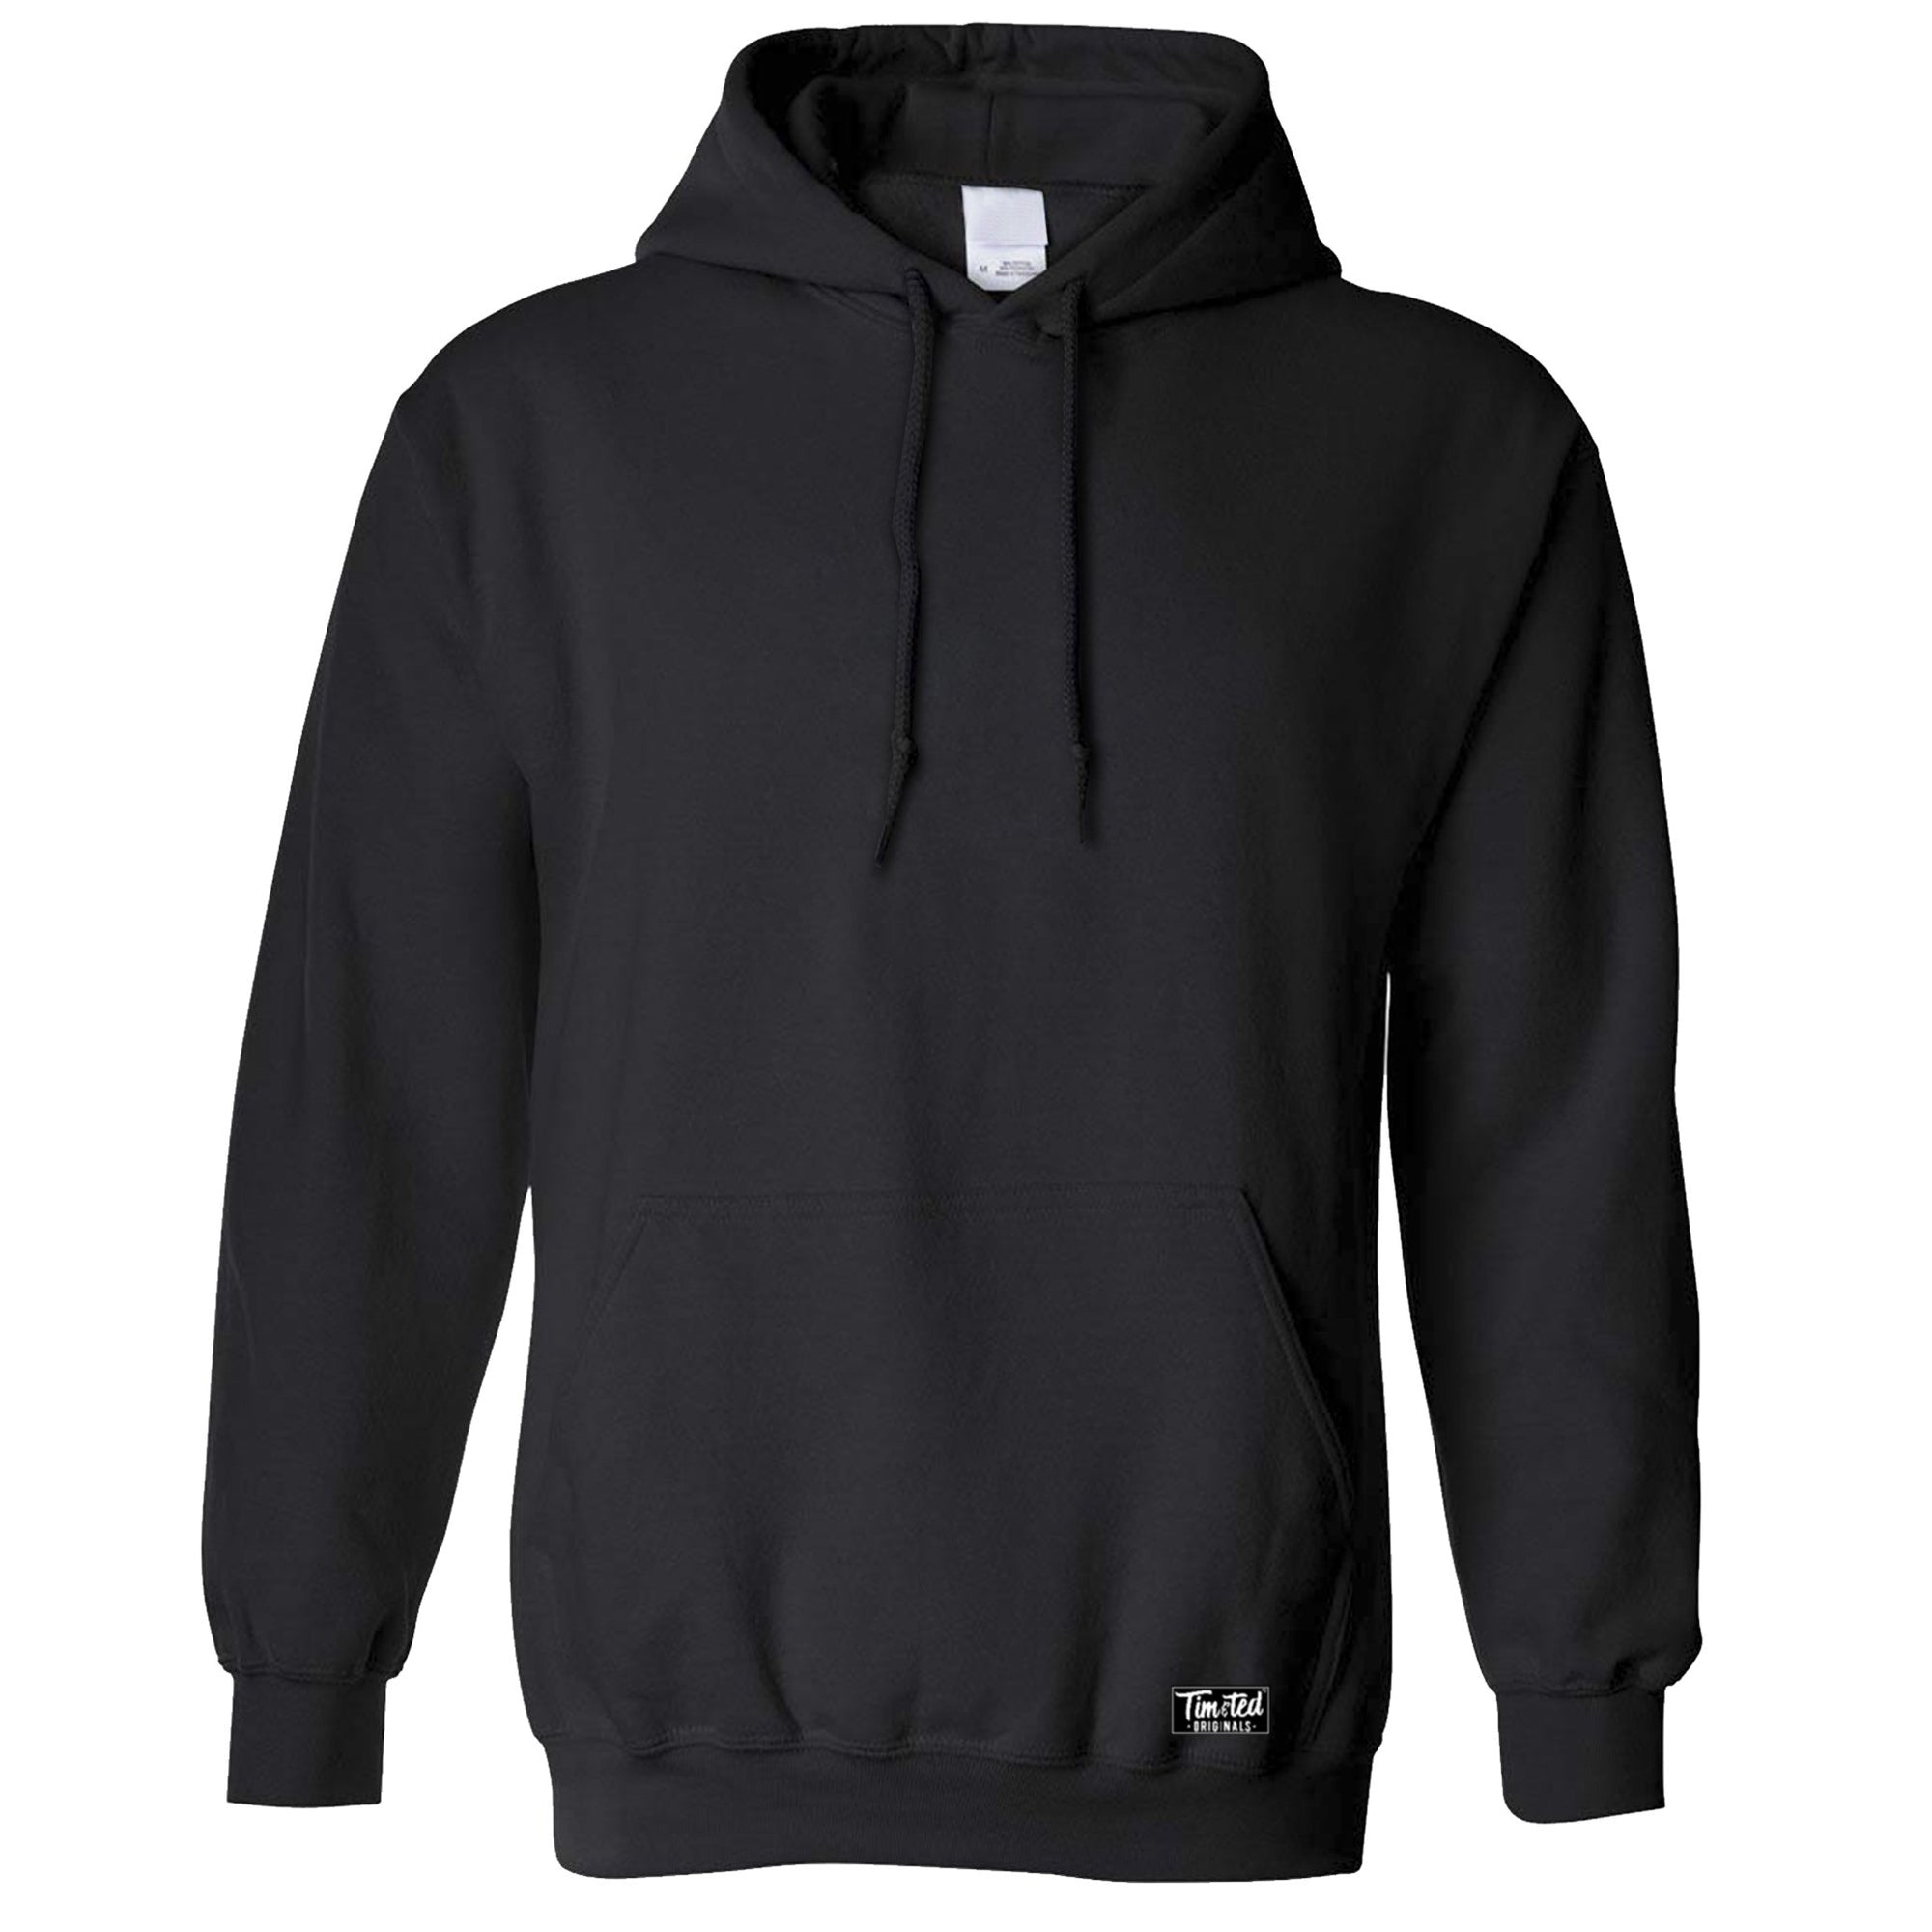 Tim and Ted Logo Premium Plain Hoodie Apparel